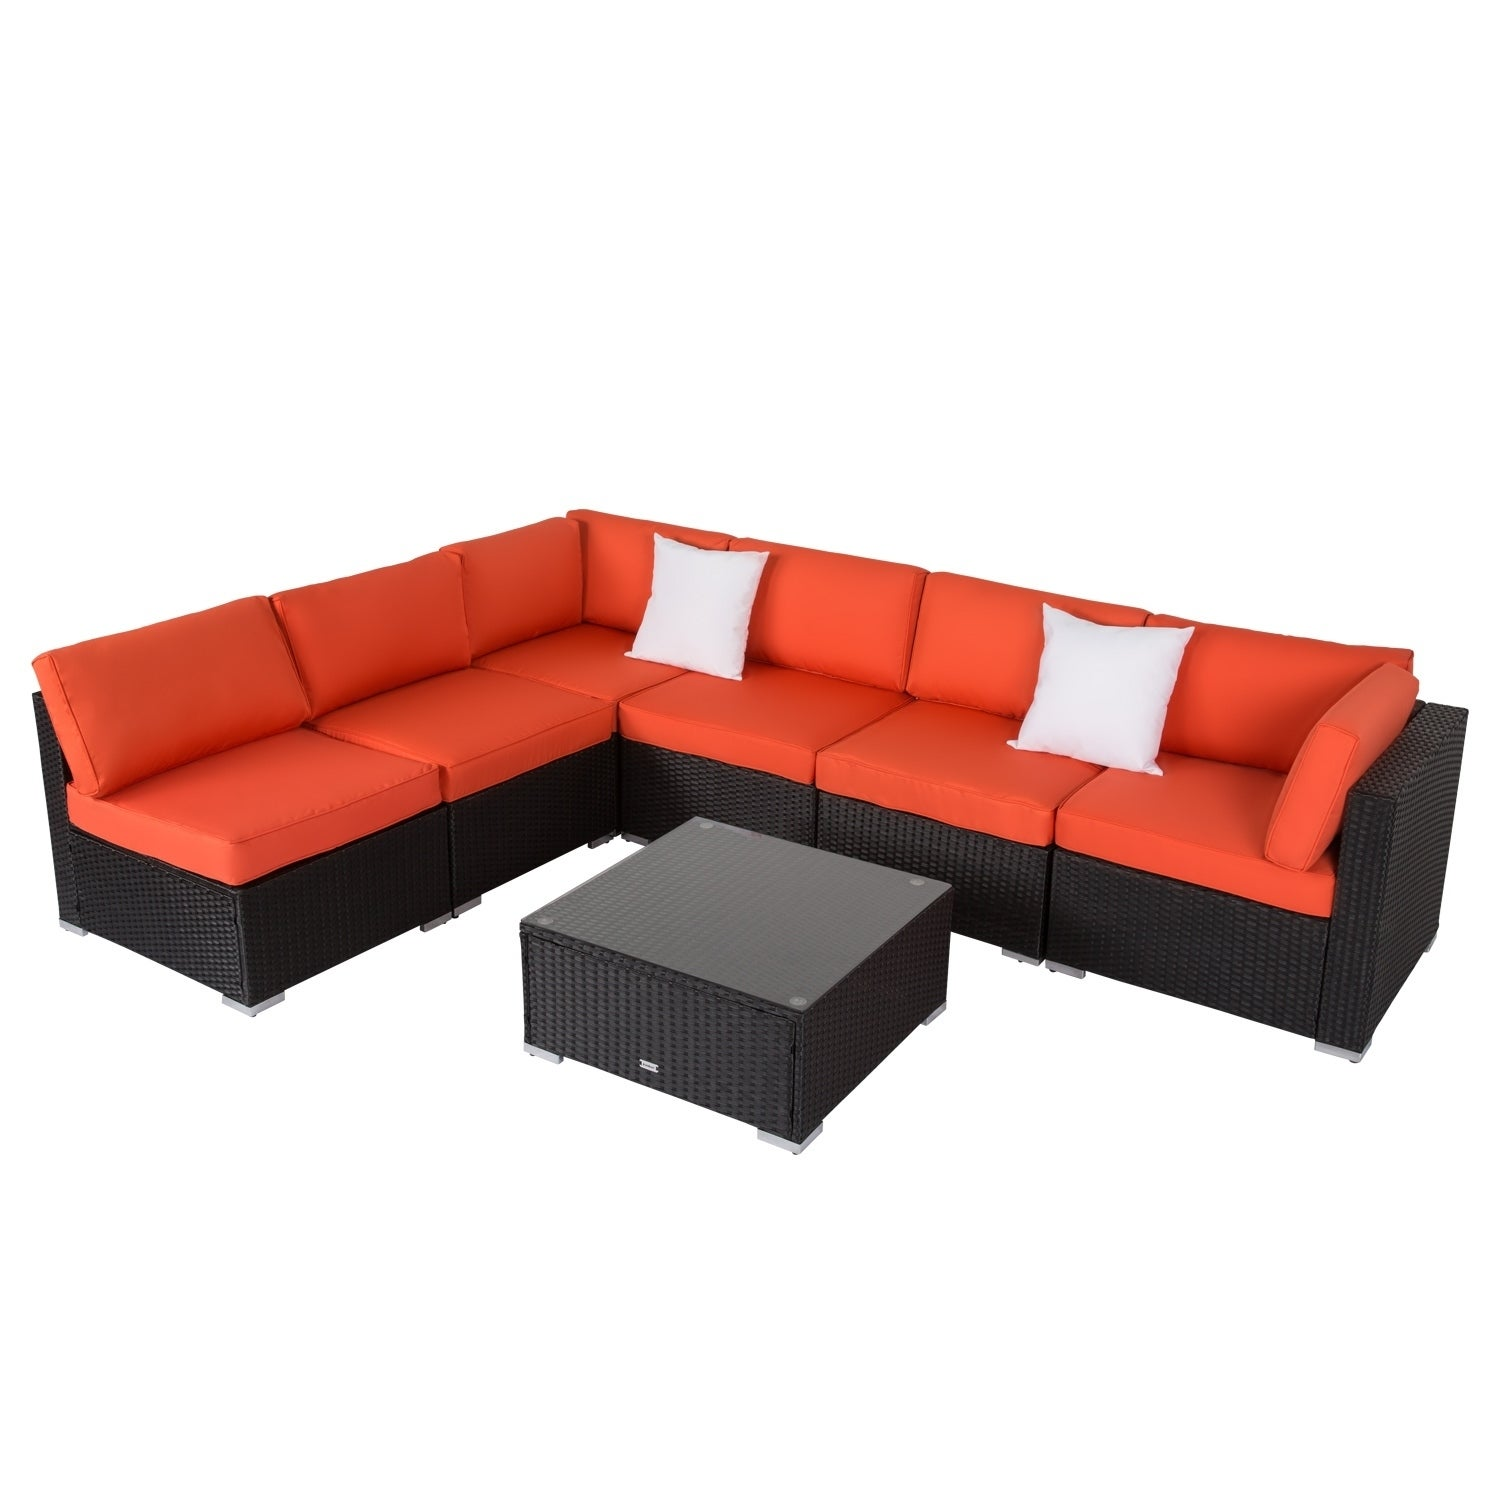 Kinbor 7 Piece Outdoor Furniture Set All Weather Patio Sectional Sofa Wicker With Cushions On Free Shipping Today